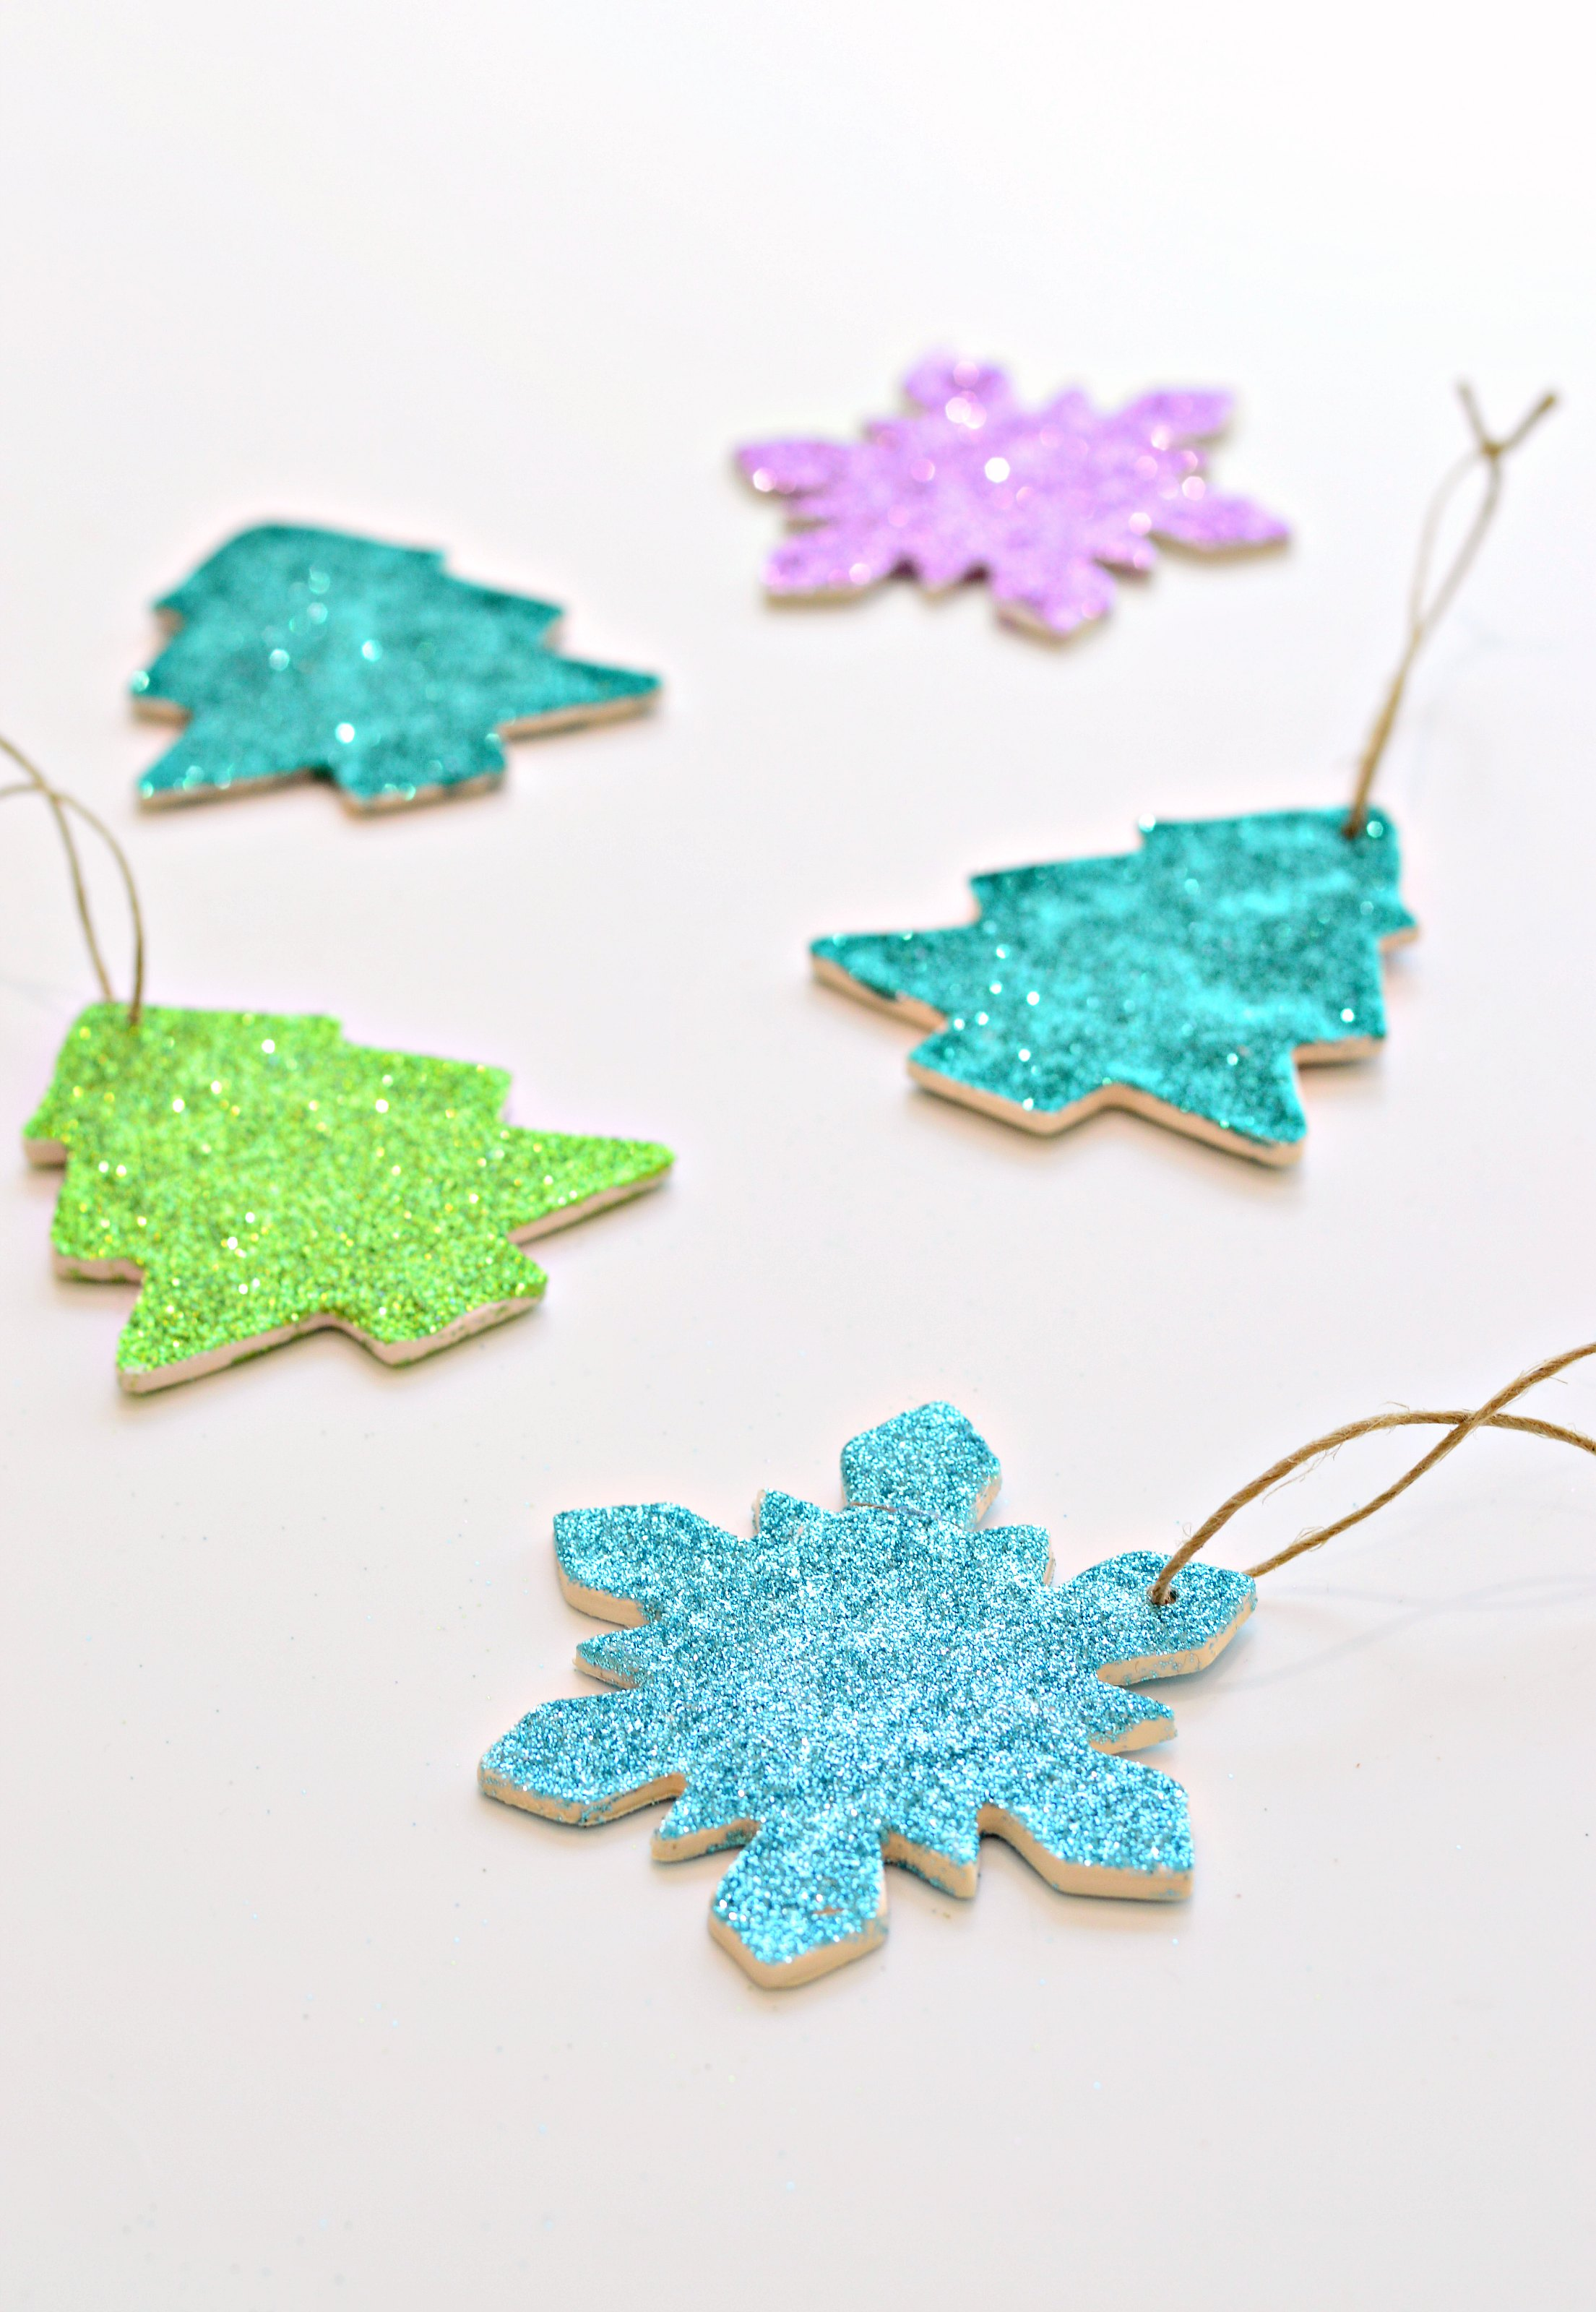 Polymer Clay Christmas Decorations.Diy Clay And Glitter Christmas Ornaments With Video Diy